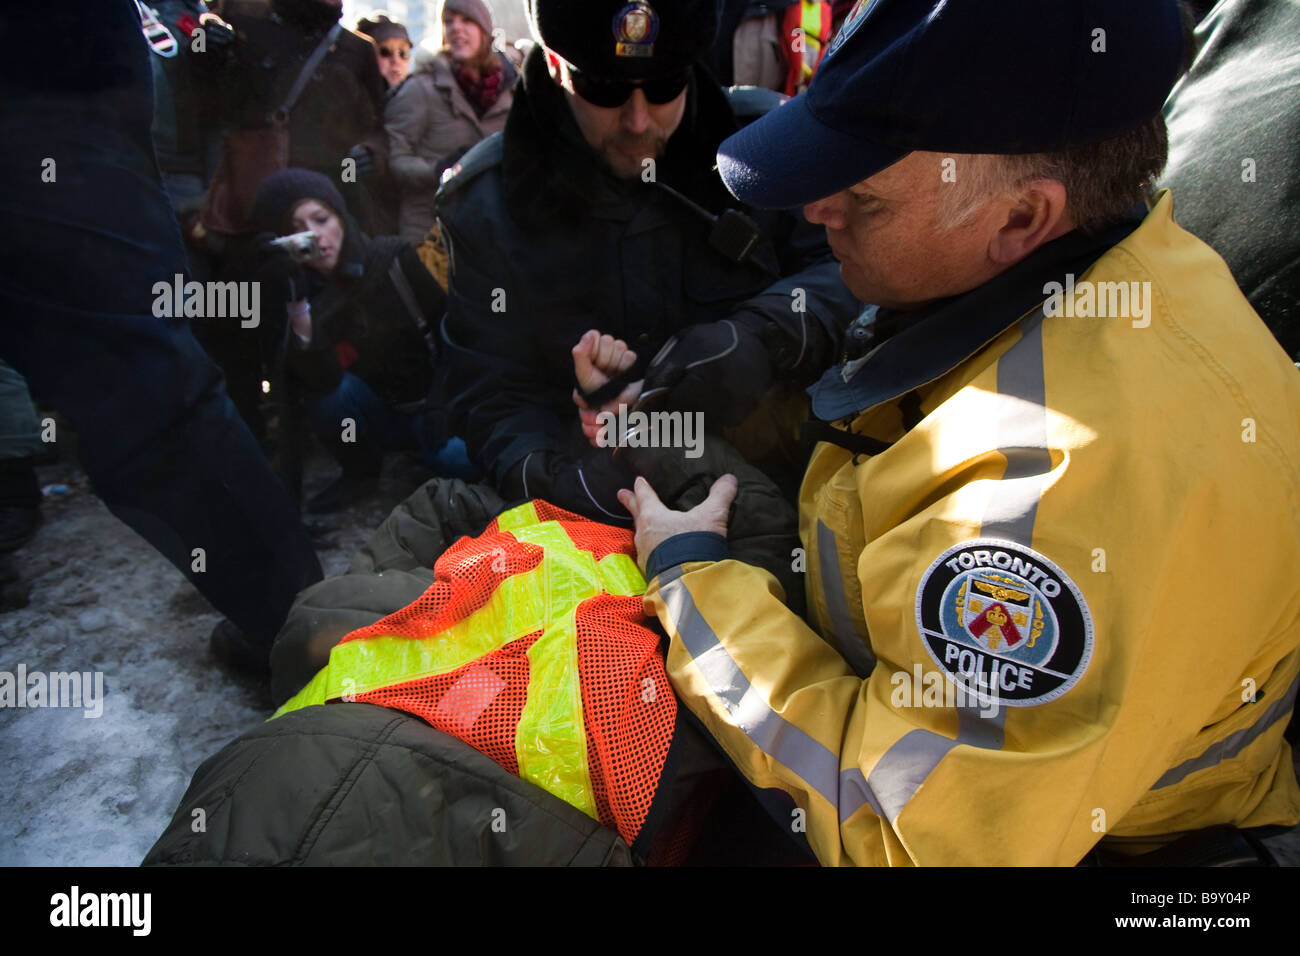 Toronto police arrests a union protester during a CUPE 3903